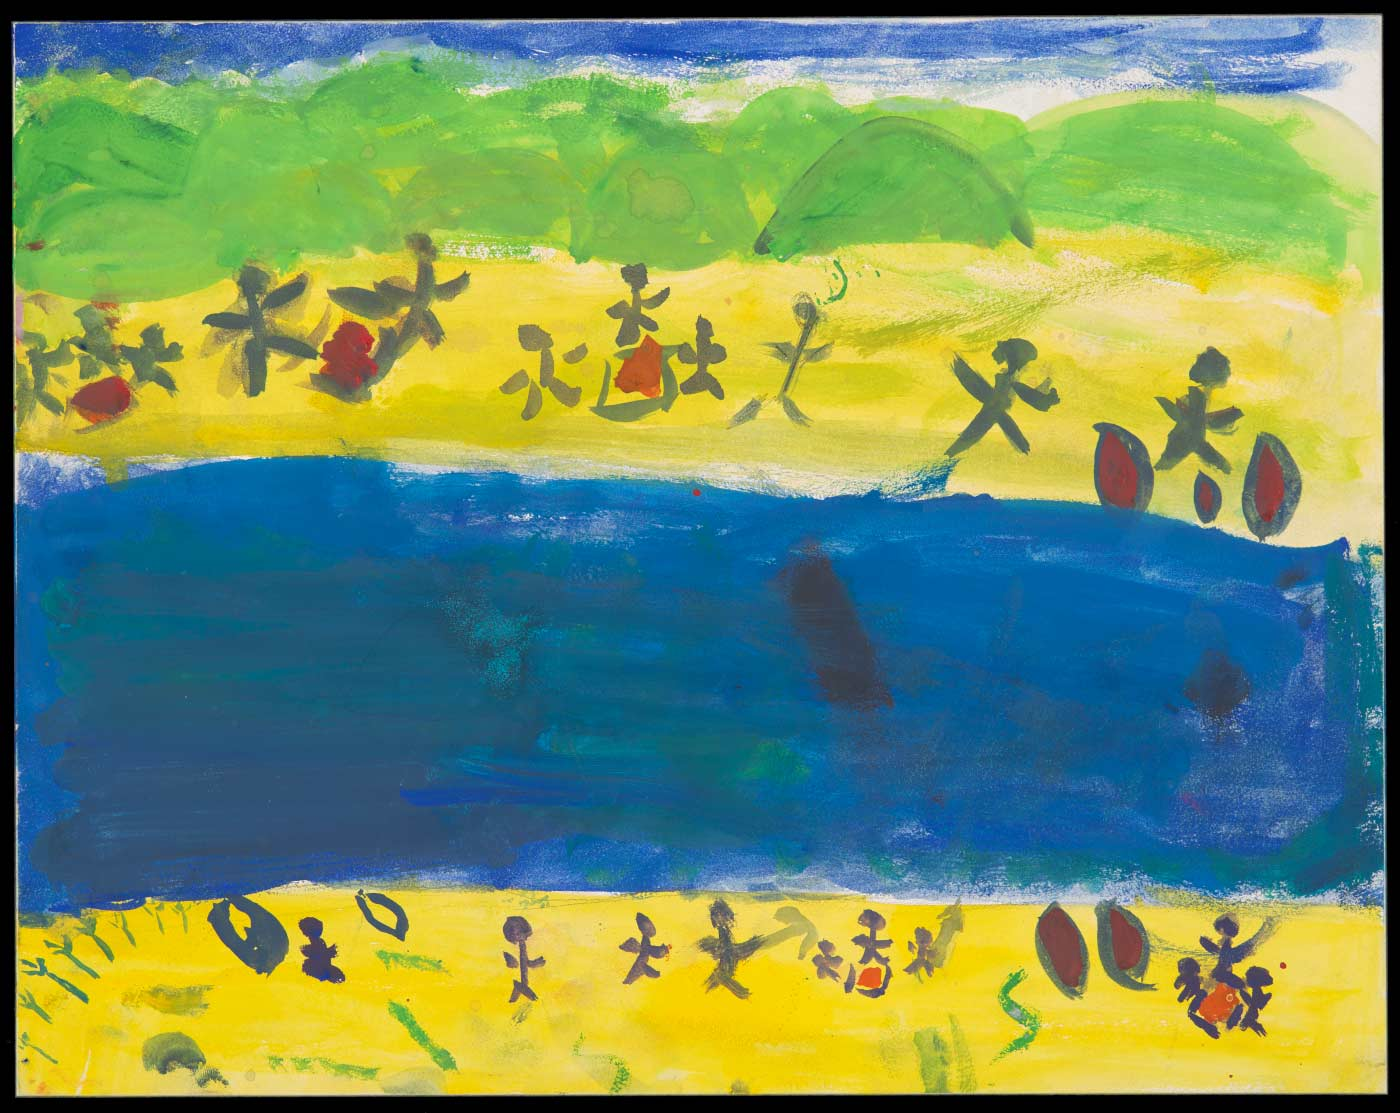 Painting on aquabord, depicting figures and campfires on a yellow shoreline either side of a blue river. Green landscape and blue sky appear across the top of the painting. - click to view larger image